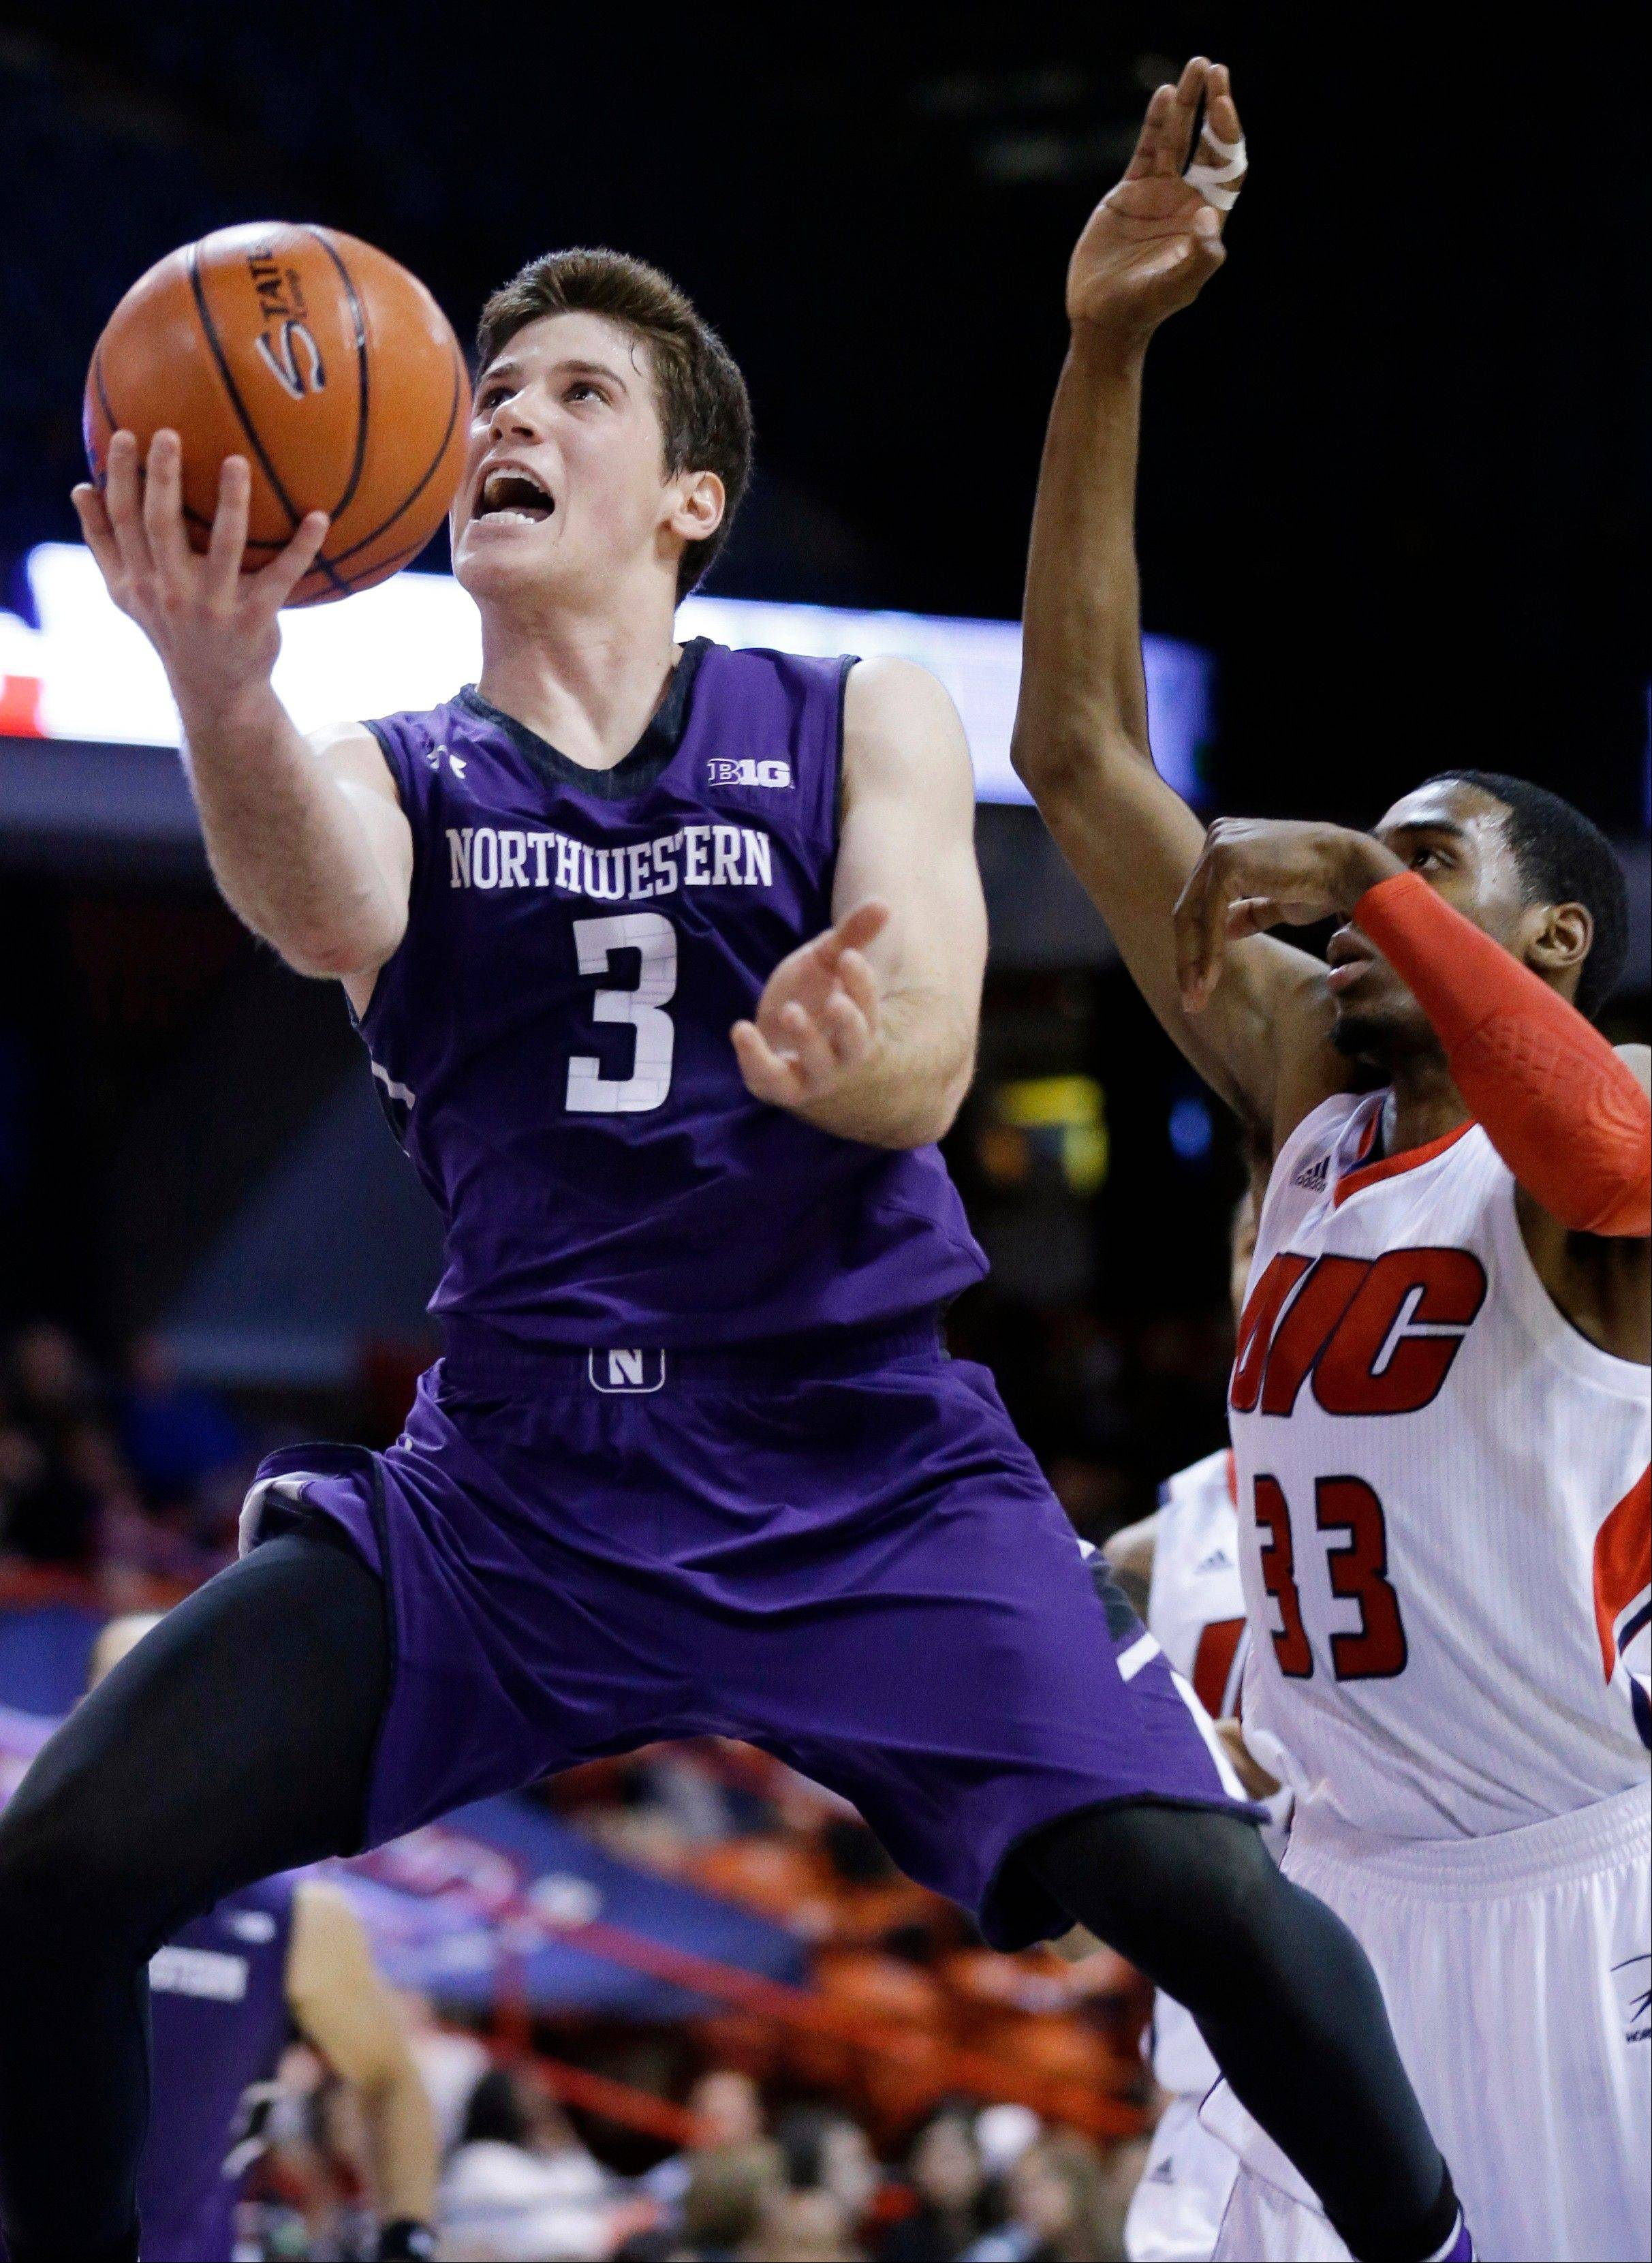 Northwestern guard Dave Sobolewski (3) drives to the basket past UIC forward Ahman Fells (33) during Wednesday�s game in Chicago.